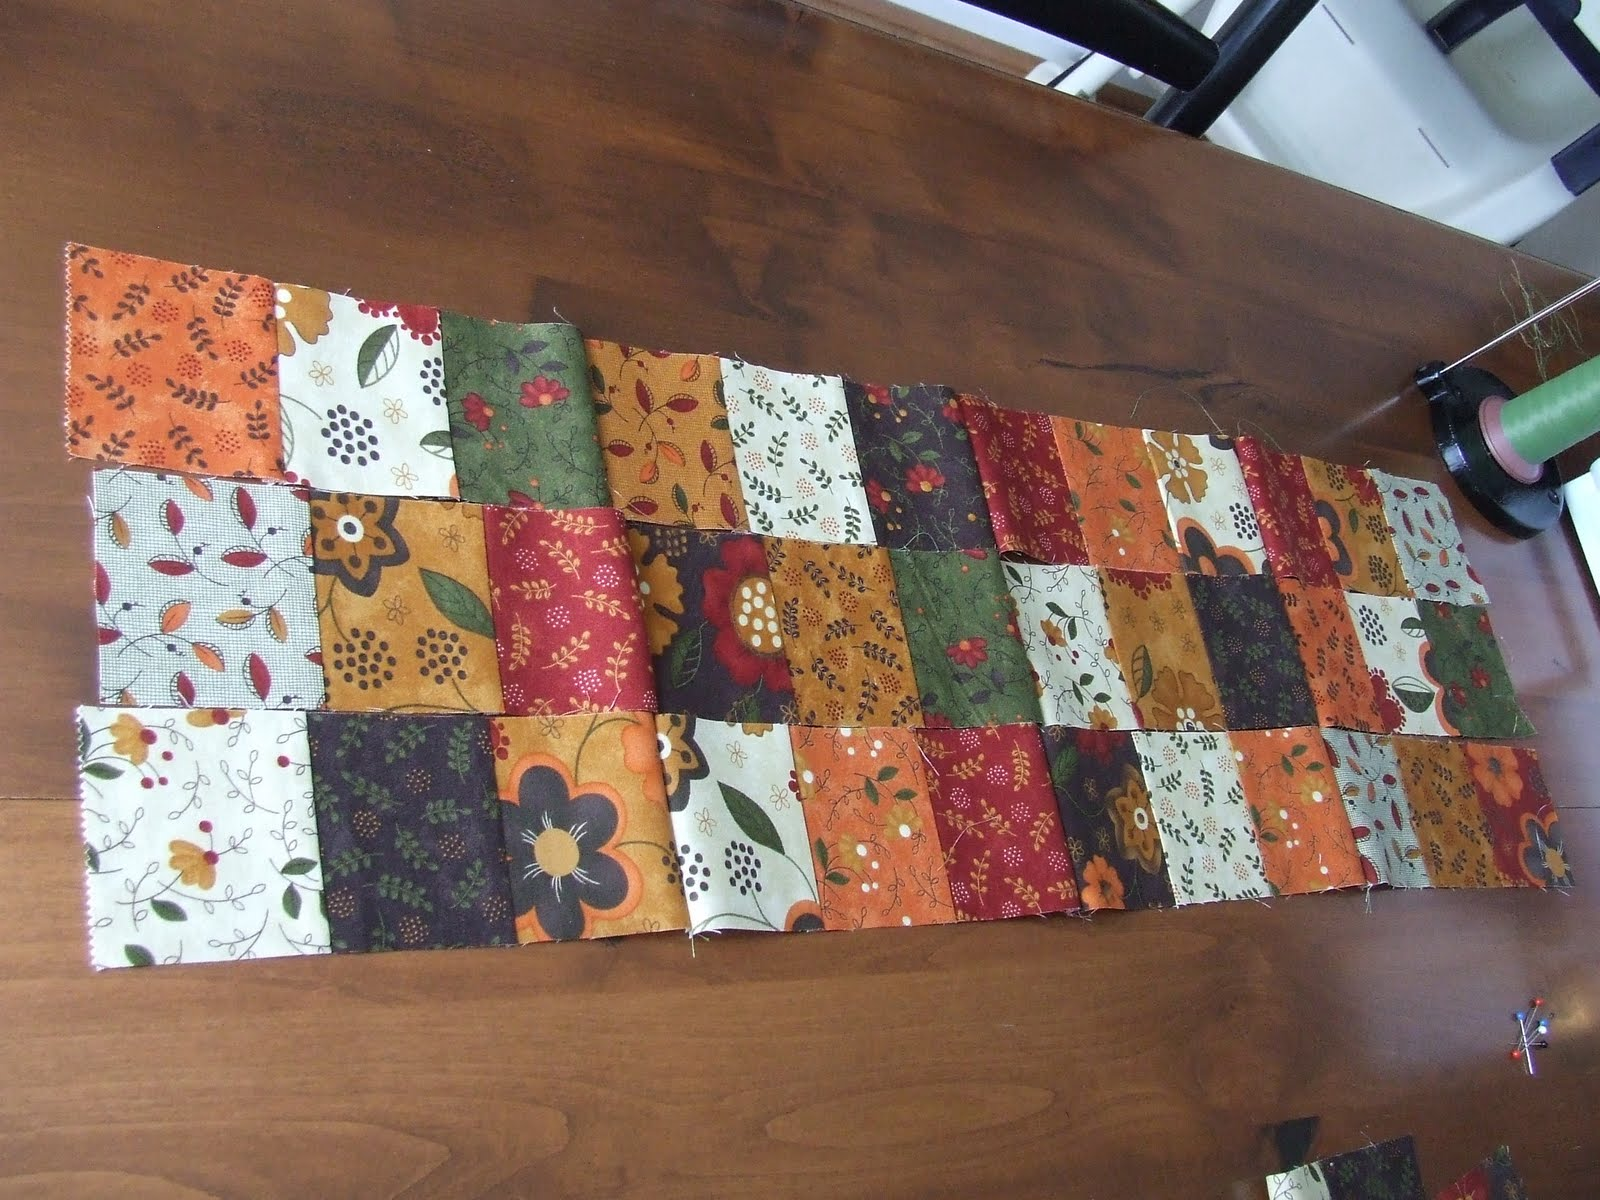 How to sew a table runner - For The Table Topper You Want To Arrange 9 Squares By 9 Squares For A Total Of 81 Squares Sew Together A Row At A Time And Then Sew Your Rows Together